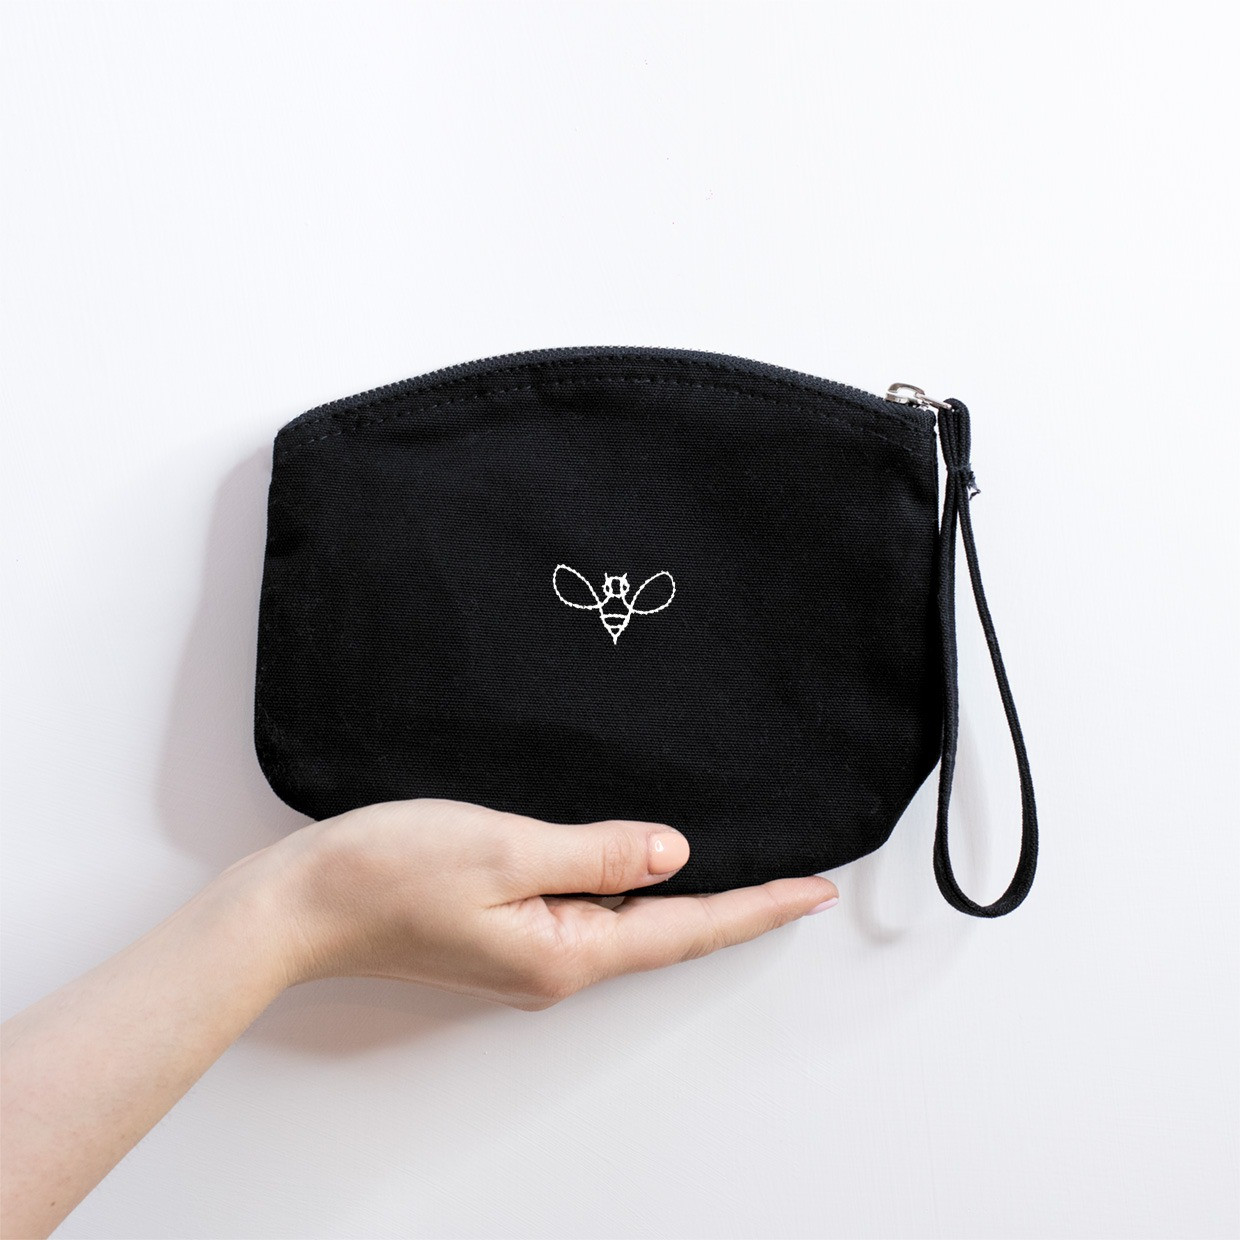 The ZIPPED POUCH M - Bee